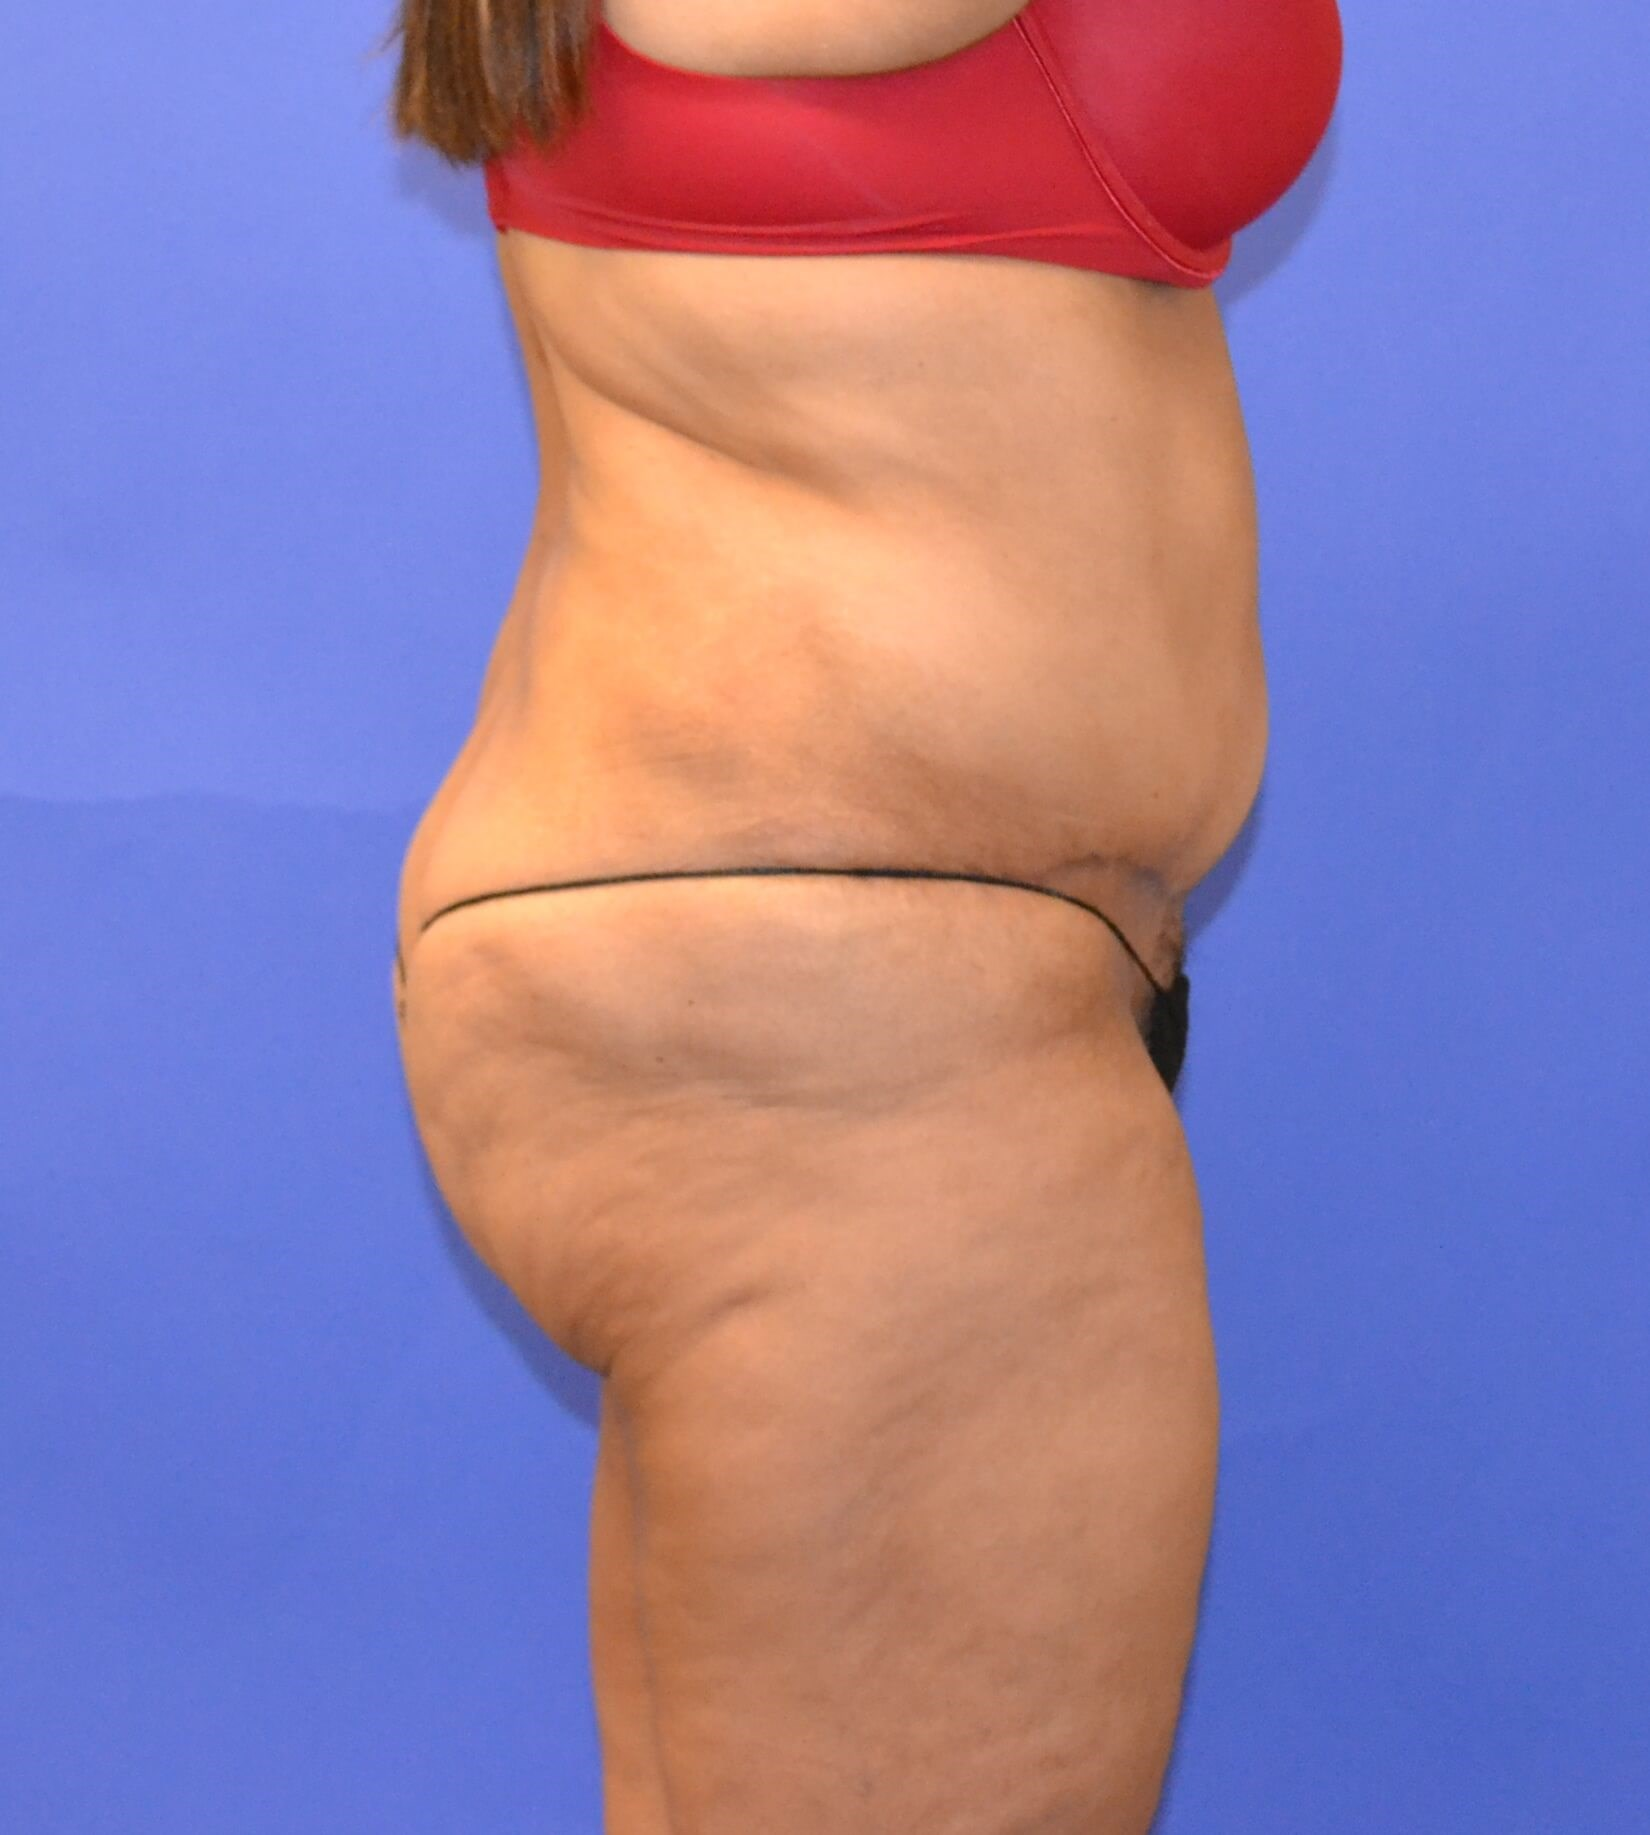 Tummy Tuck - Side view After